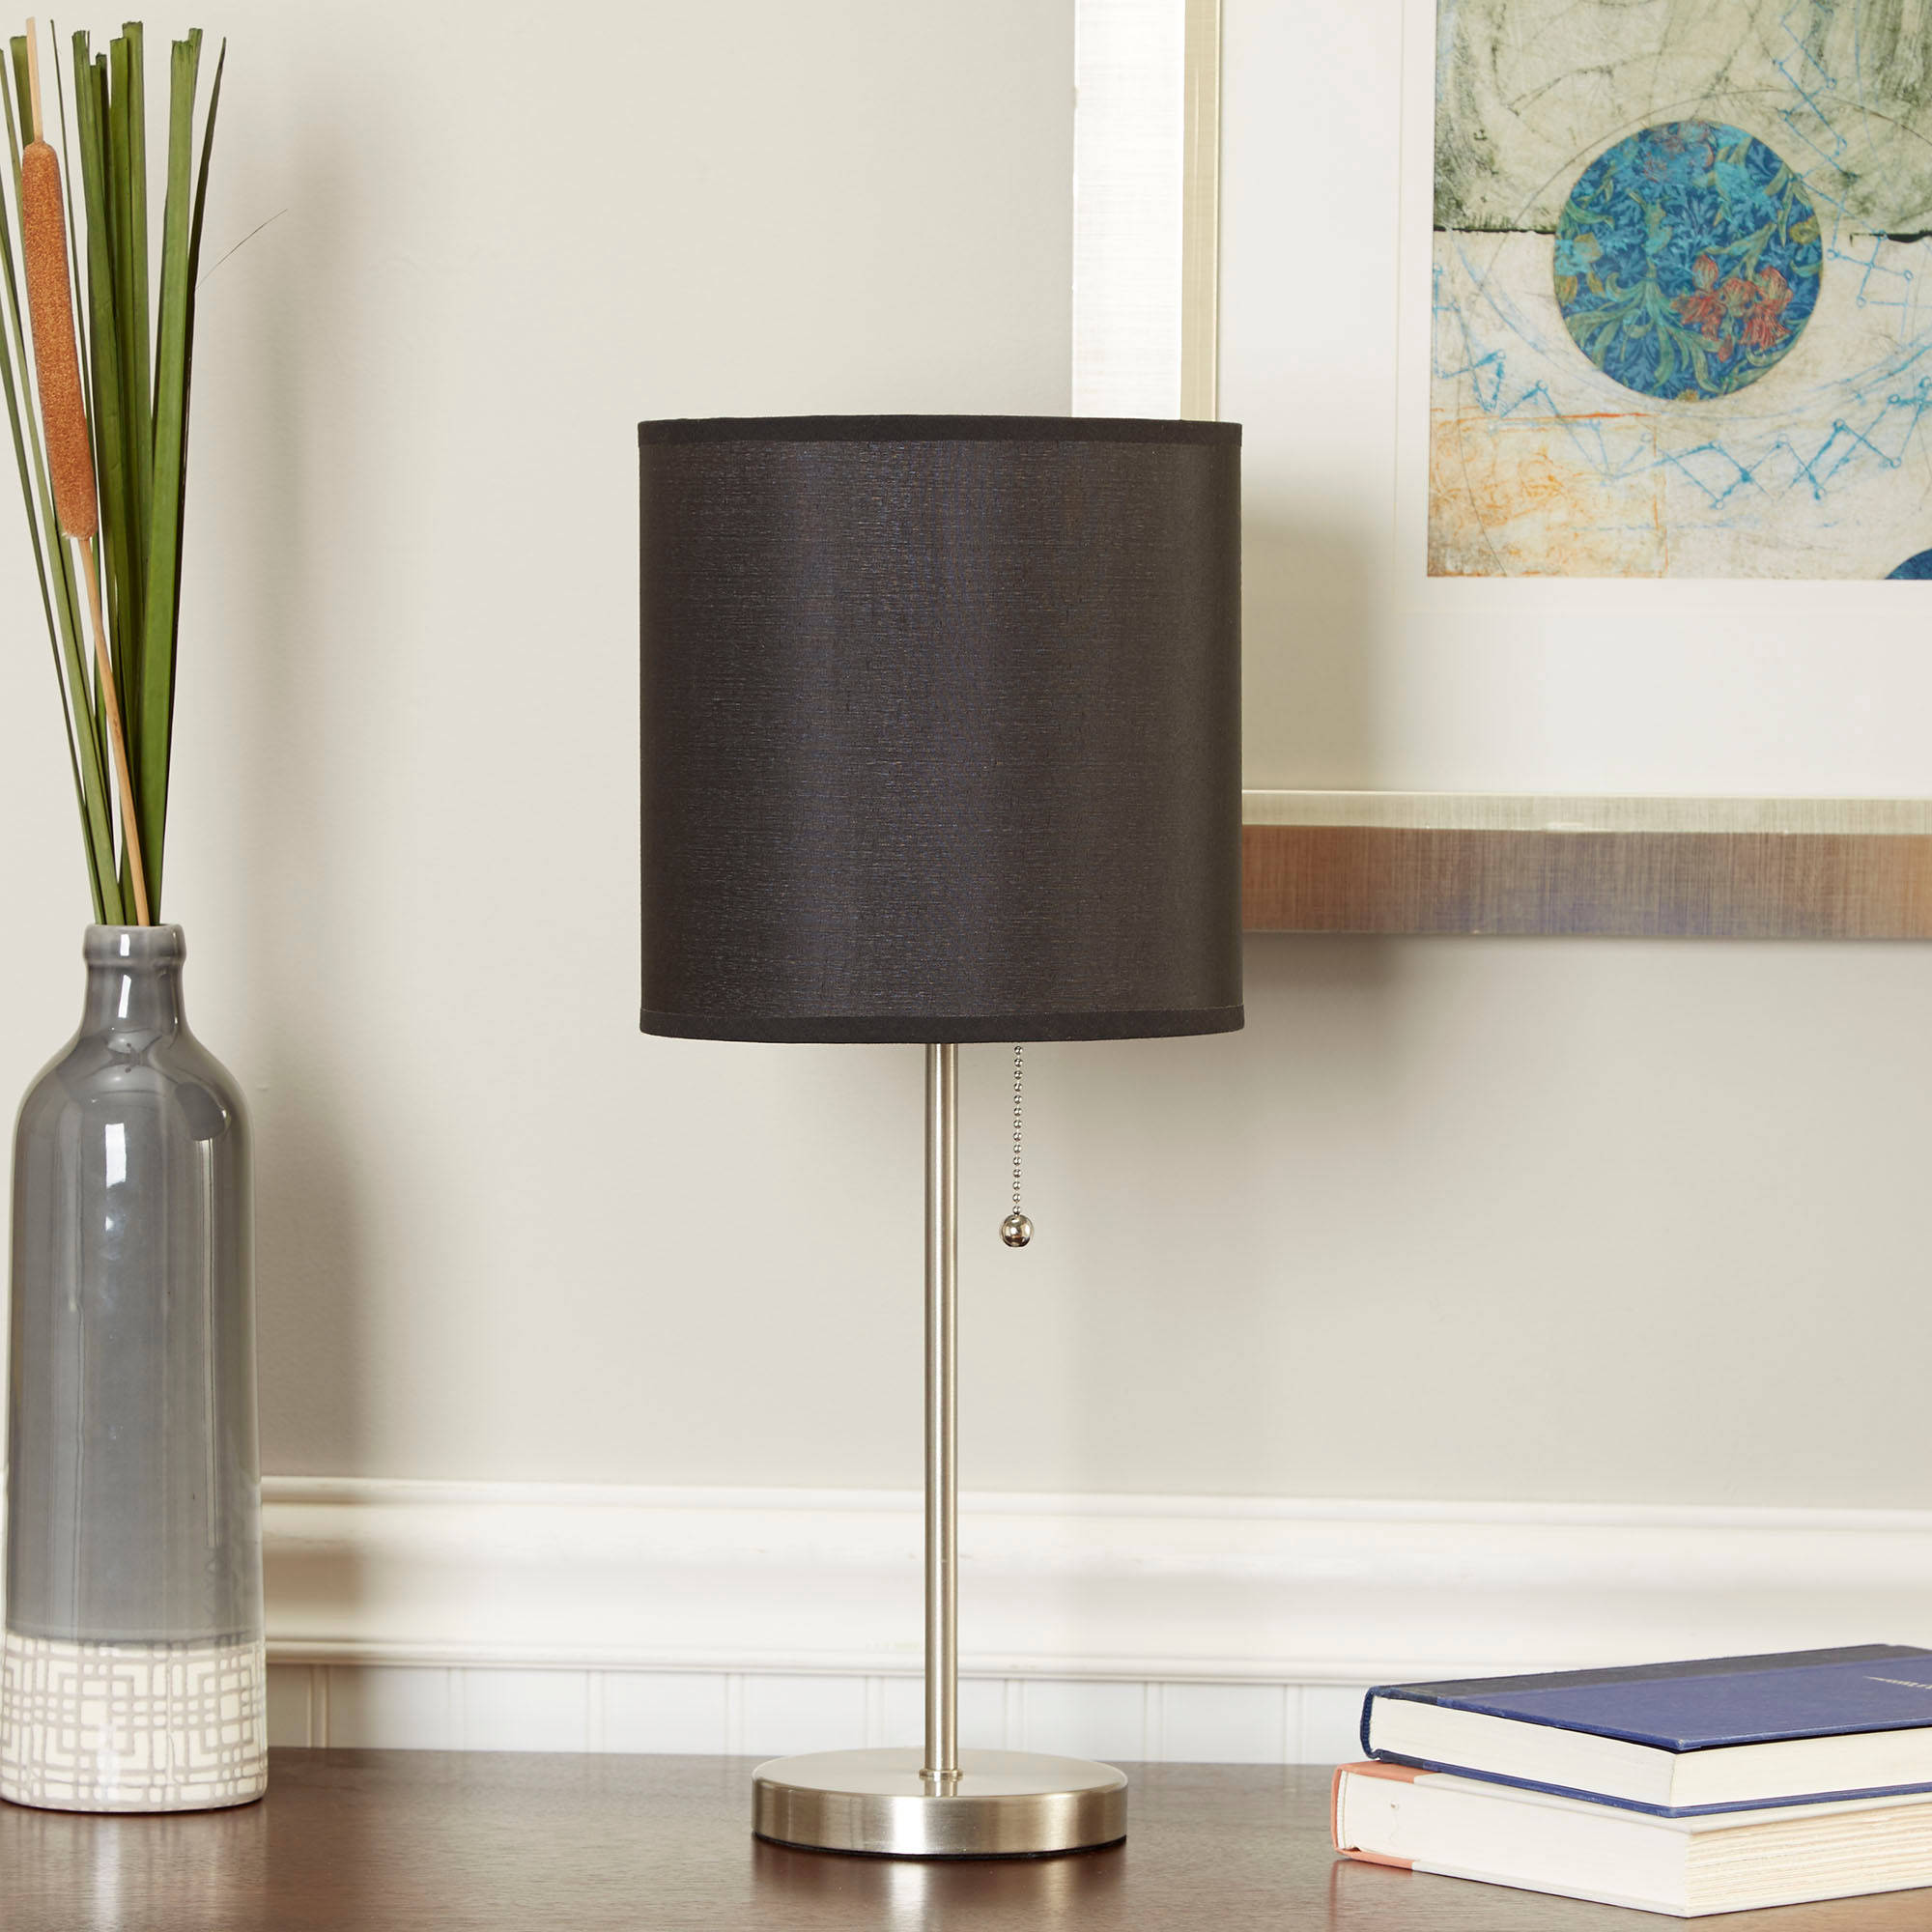 Mainstays Stick Table Lamp with Shade, CFL Bulb Included - Walmart.com